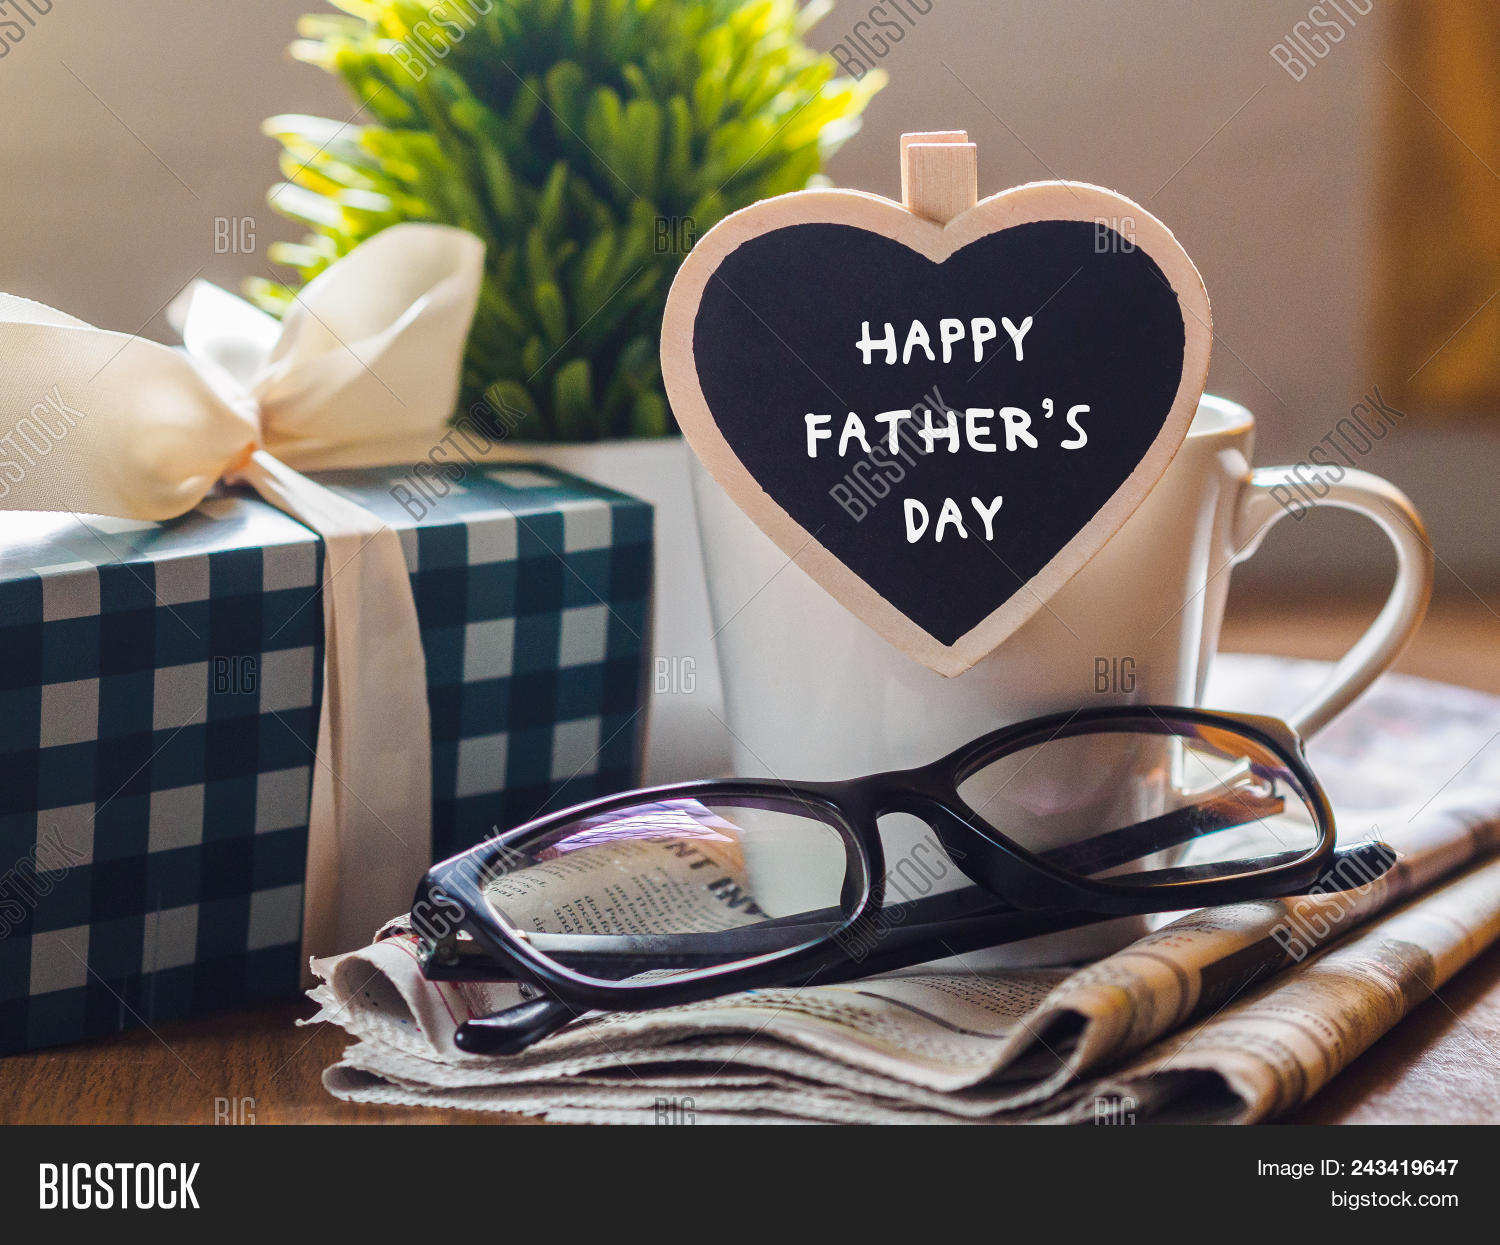 Happy Fathers Day Image Photo Free Trial Bigstock